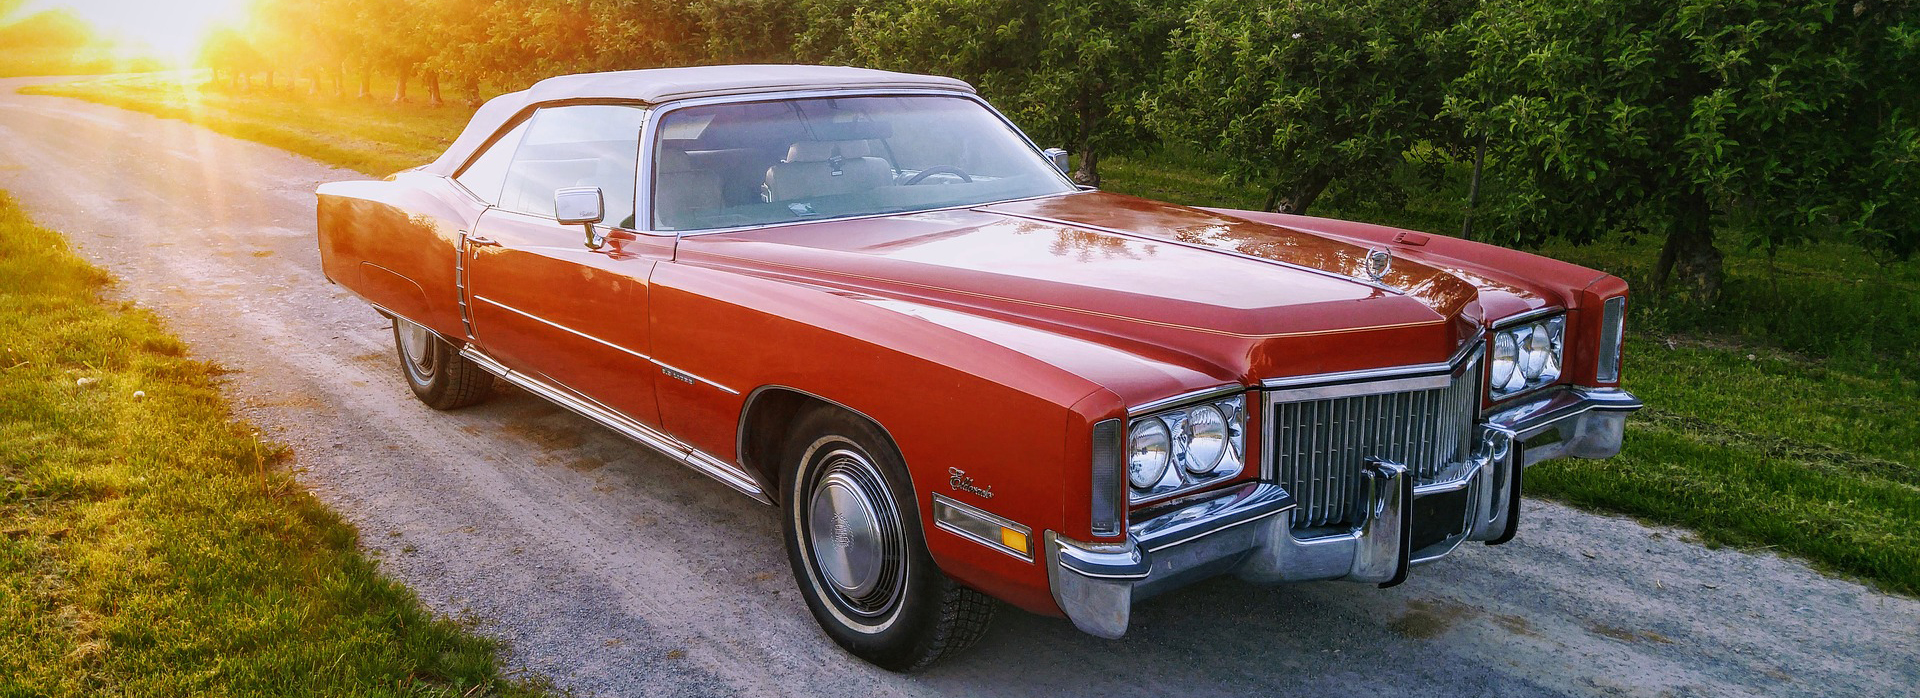 Classic Red Cadillac in Fort Myers Florida | Breast Cancer Car Donations